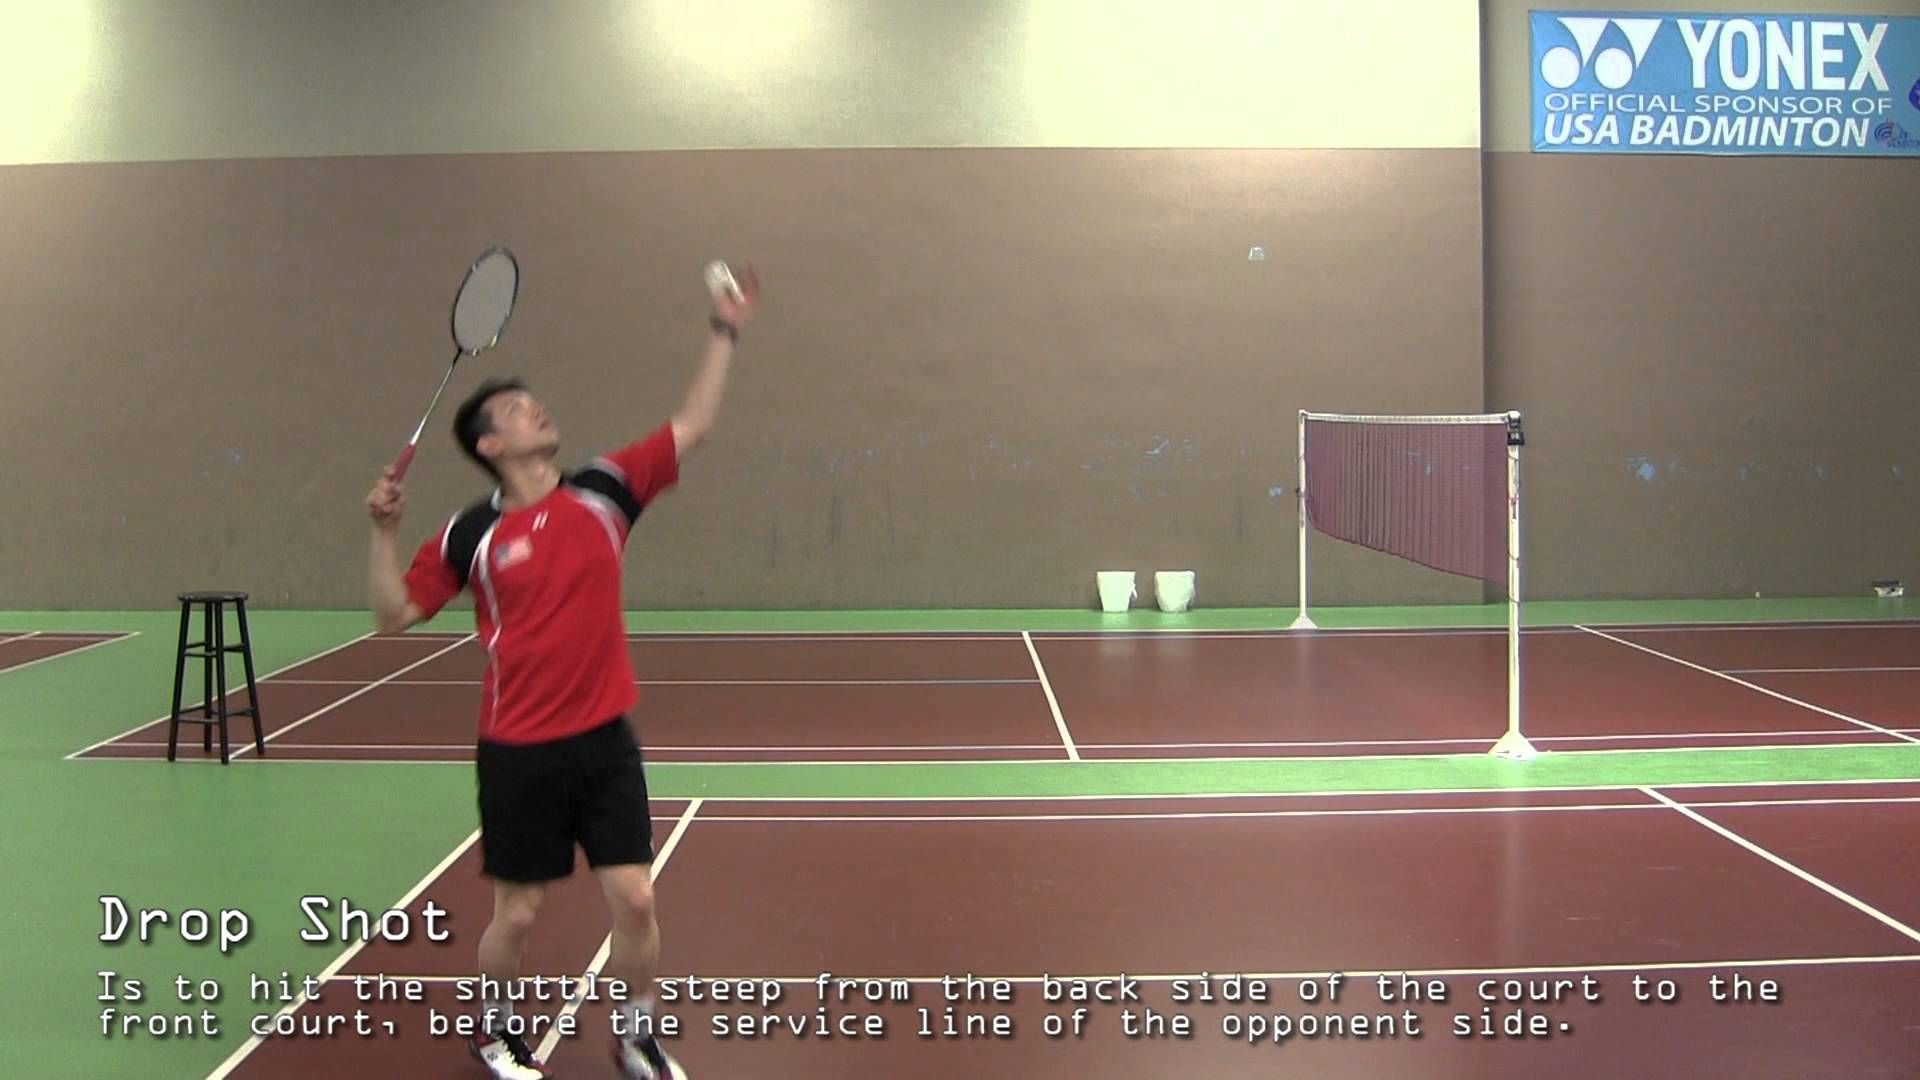 Badminton Beginners Introduction Of Basic Shots And Grips In Badminton Badminton Badminton Videos Badminton Drills